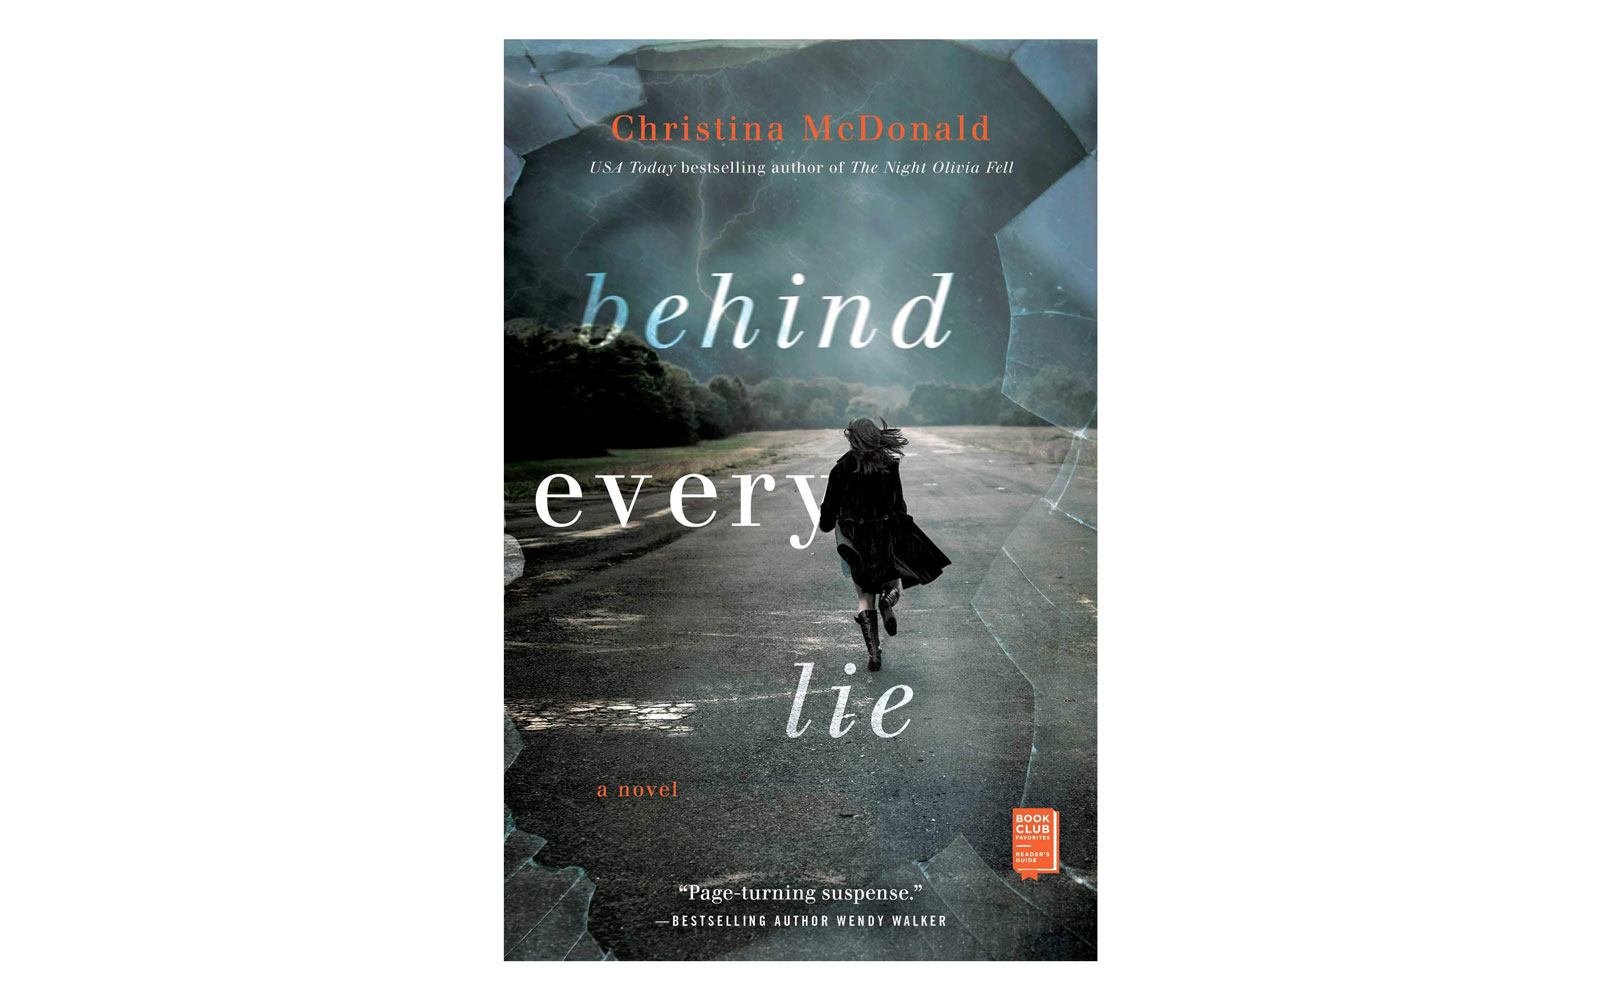 Behind Every Lie book